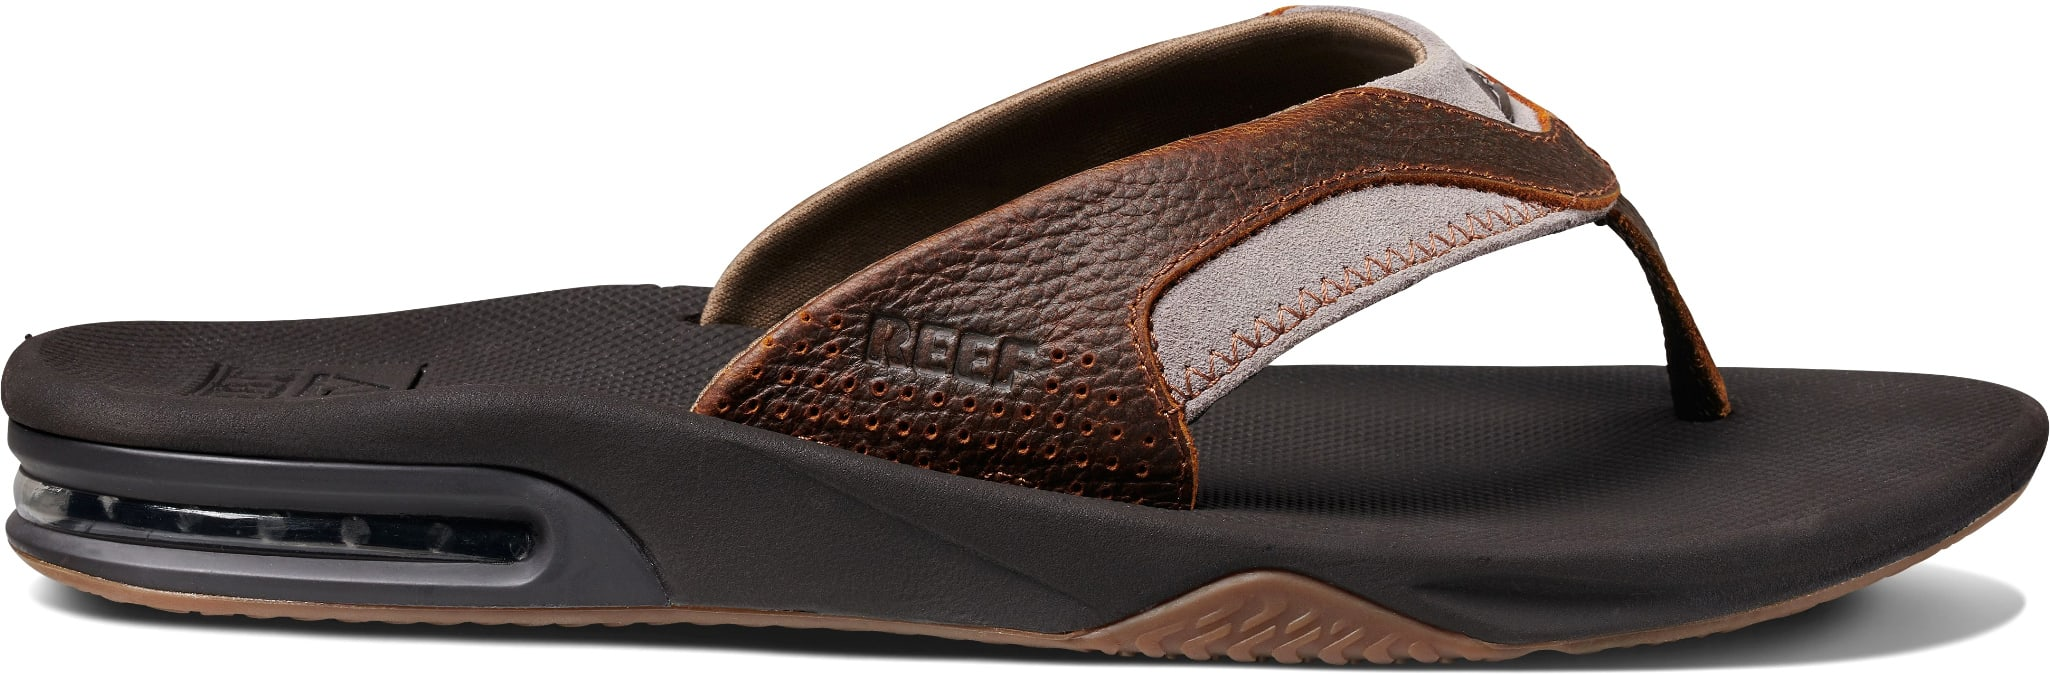 Reef Leather Fanning Sandals 2019-3803